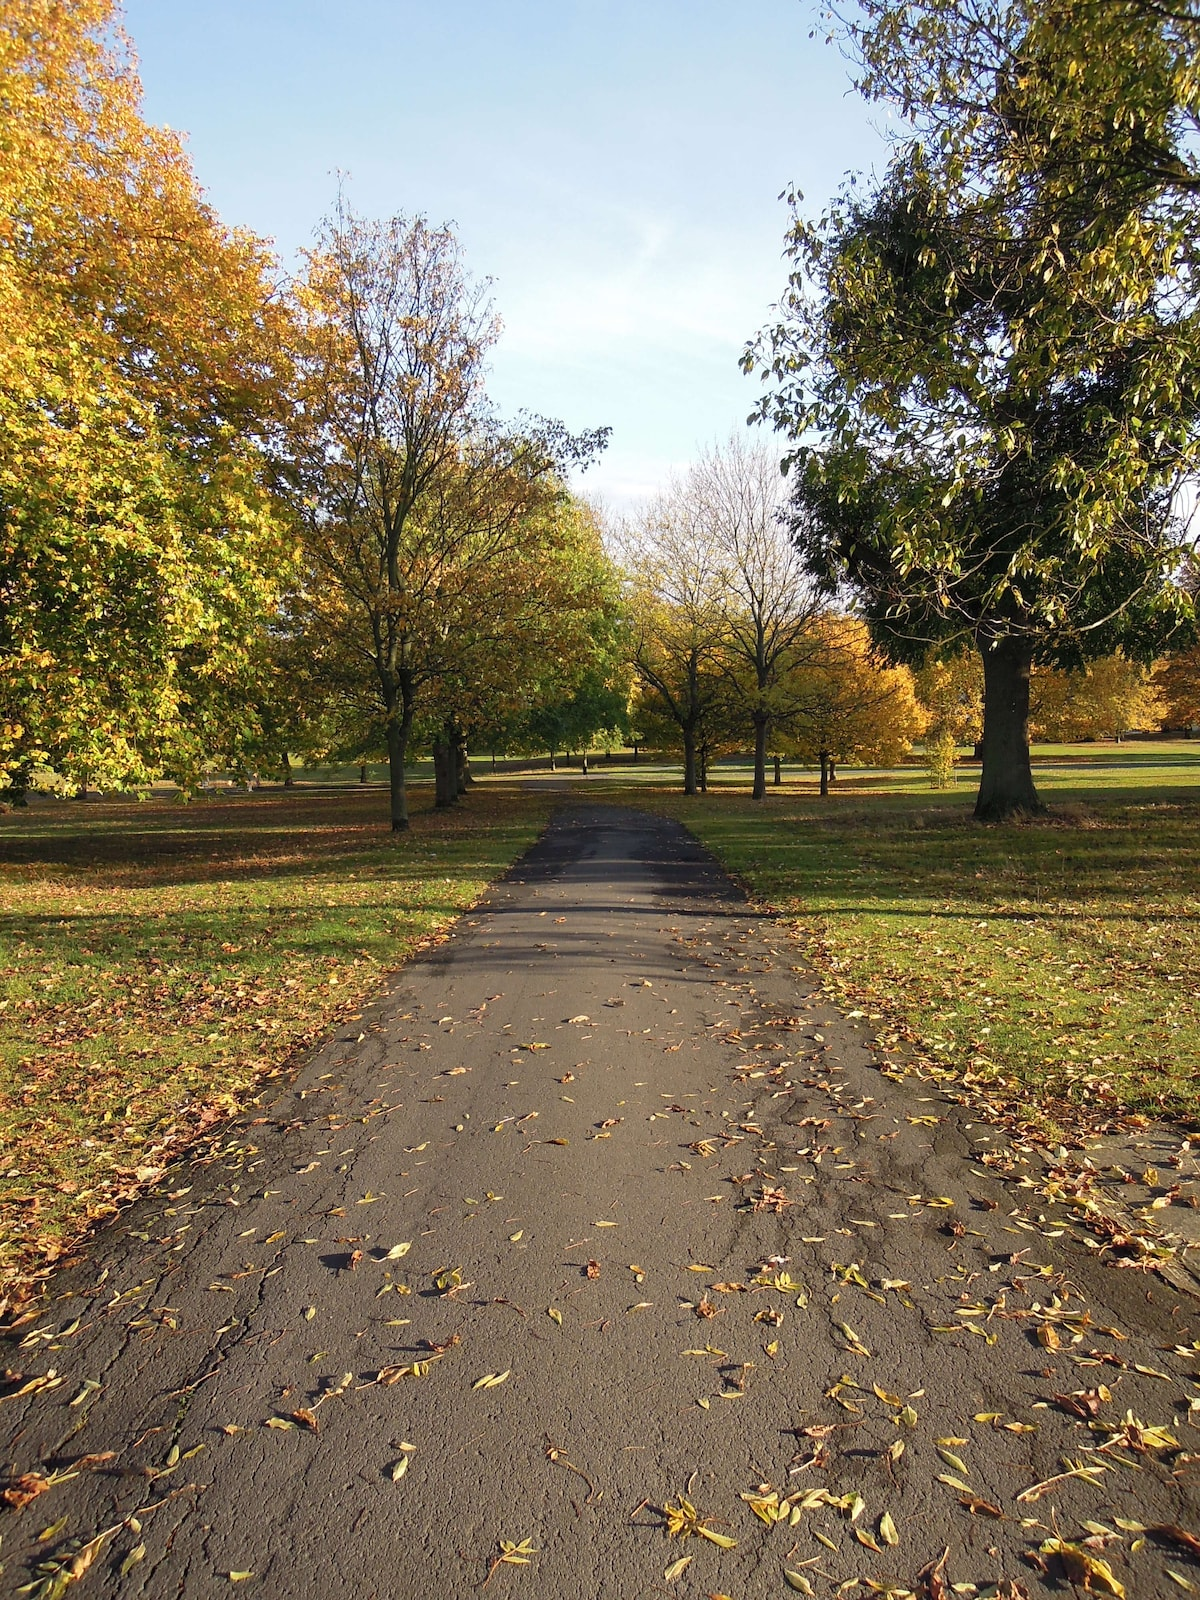 A gentle stroll, jogging or running can be undertaken in Brockwell Park